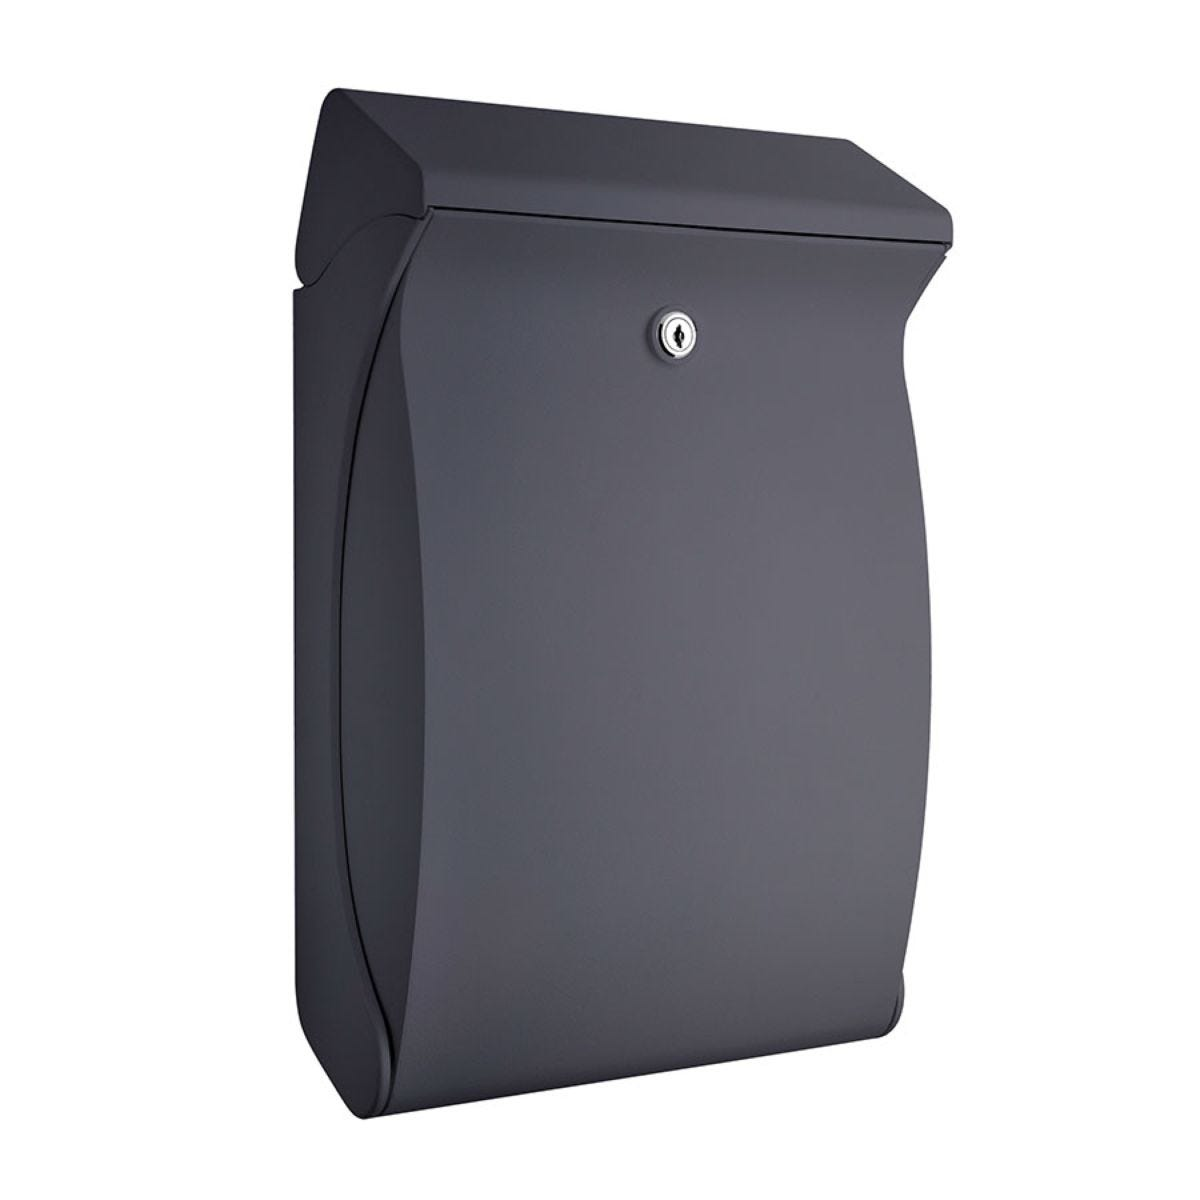 Burg-Wachter Swing Post Box - Anthracite